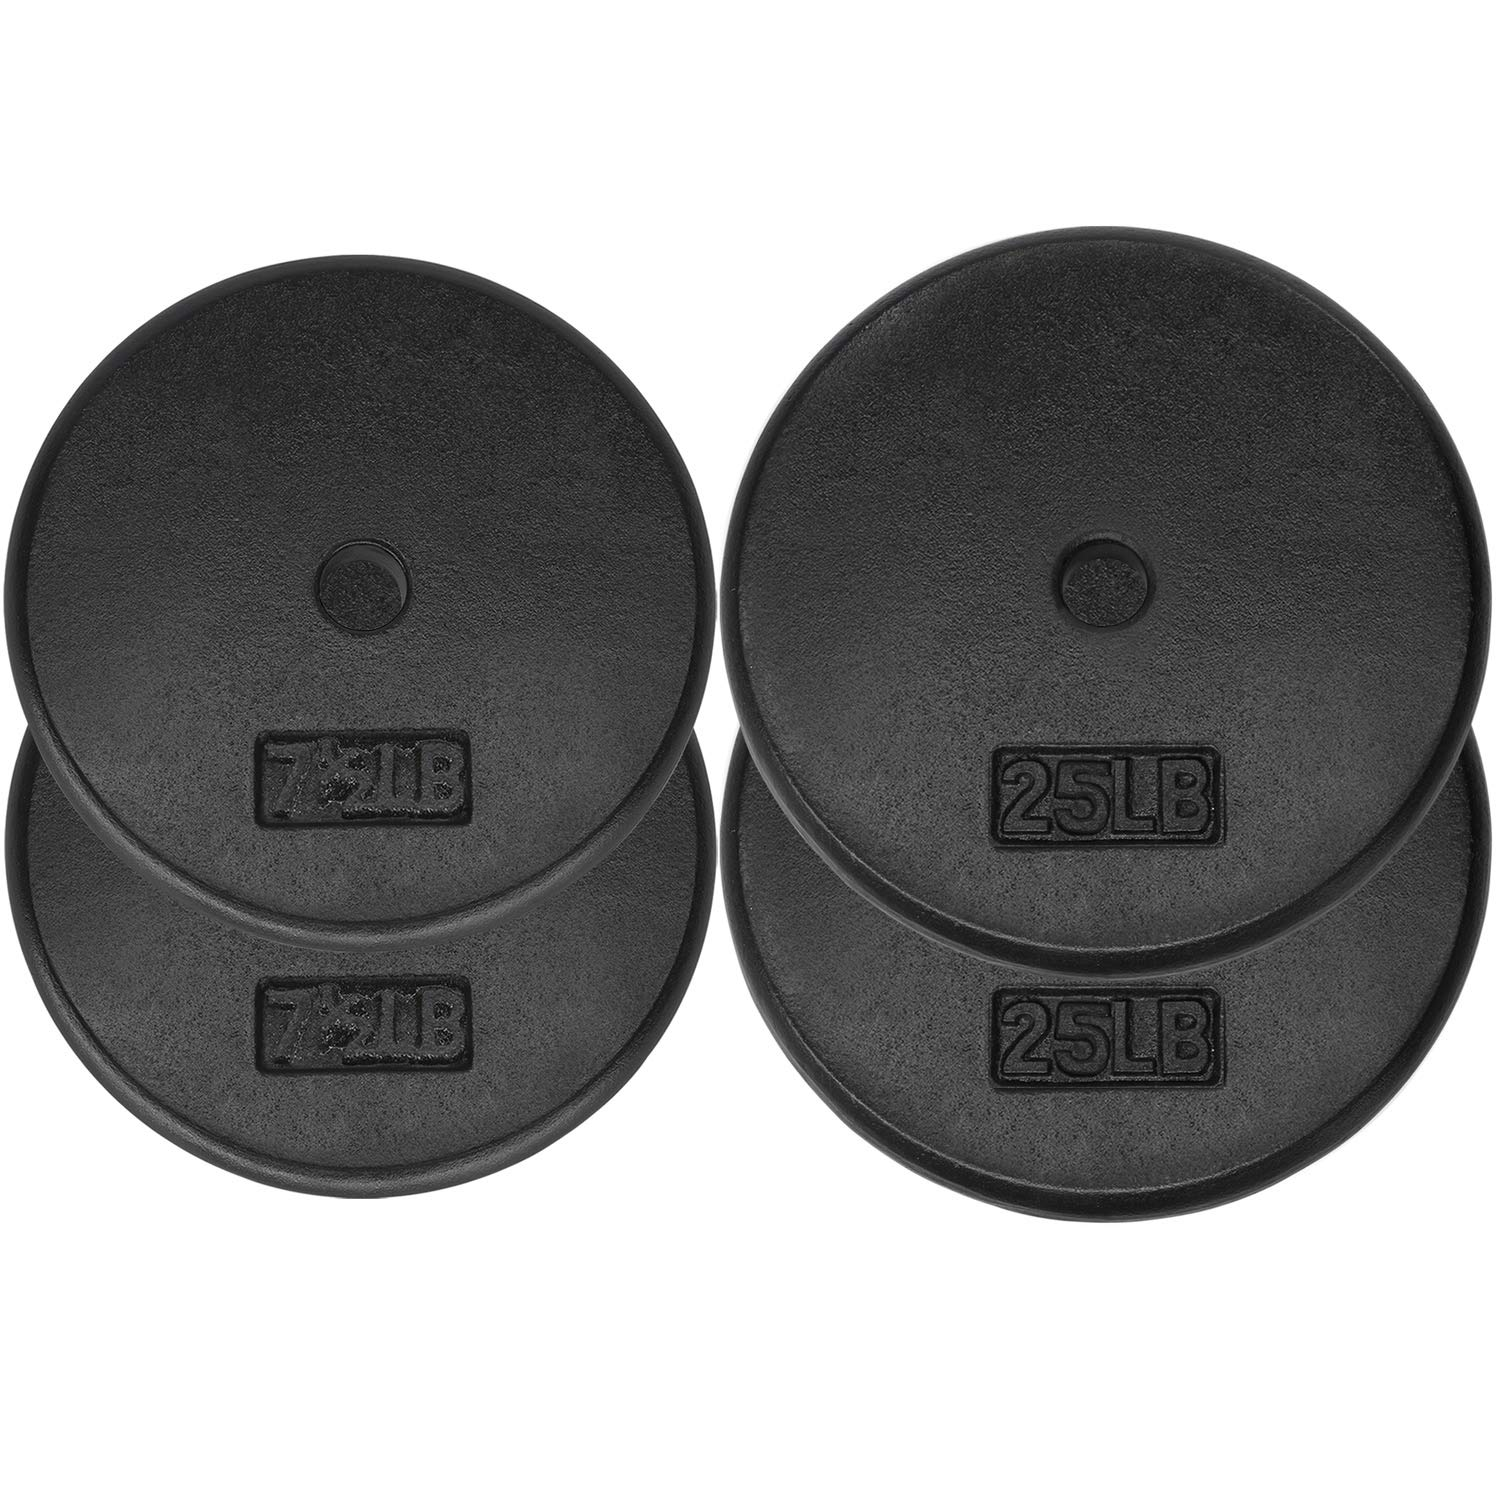 Yes4All 1-inch Cast Iron Weight Plates for Dumbbells – Standard Weight Plates (Combo 7.5lb x 2pcs + 25lb x 2pcs)